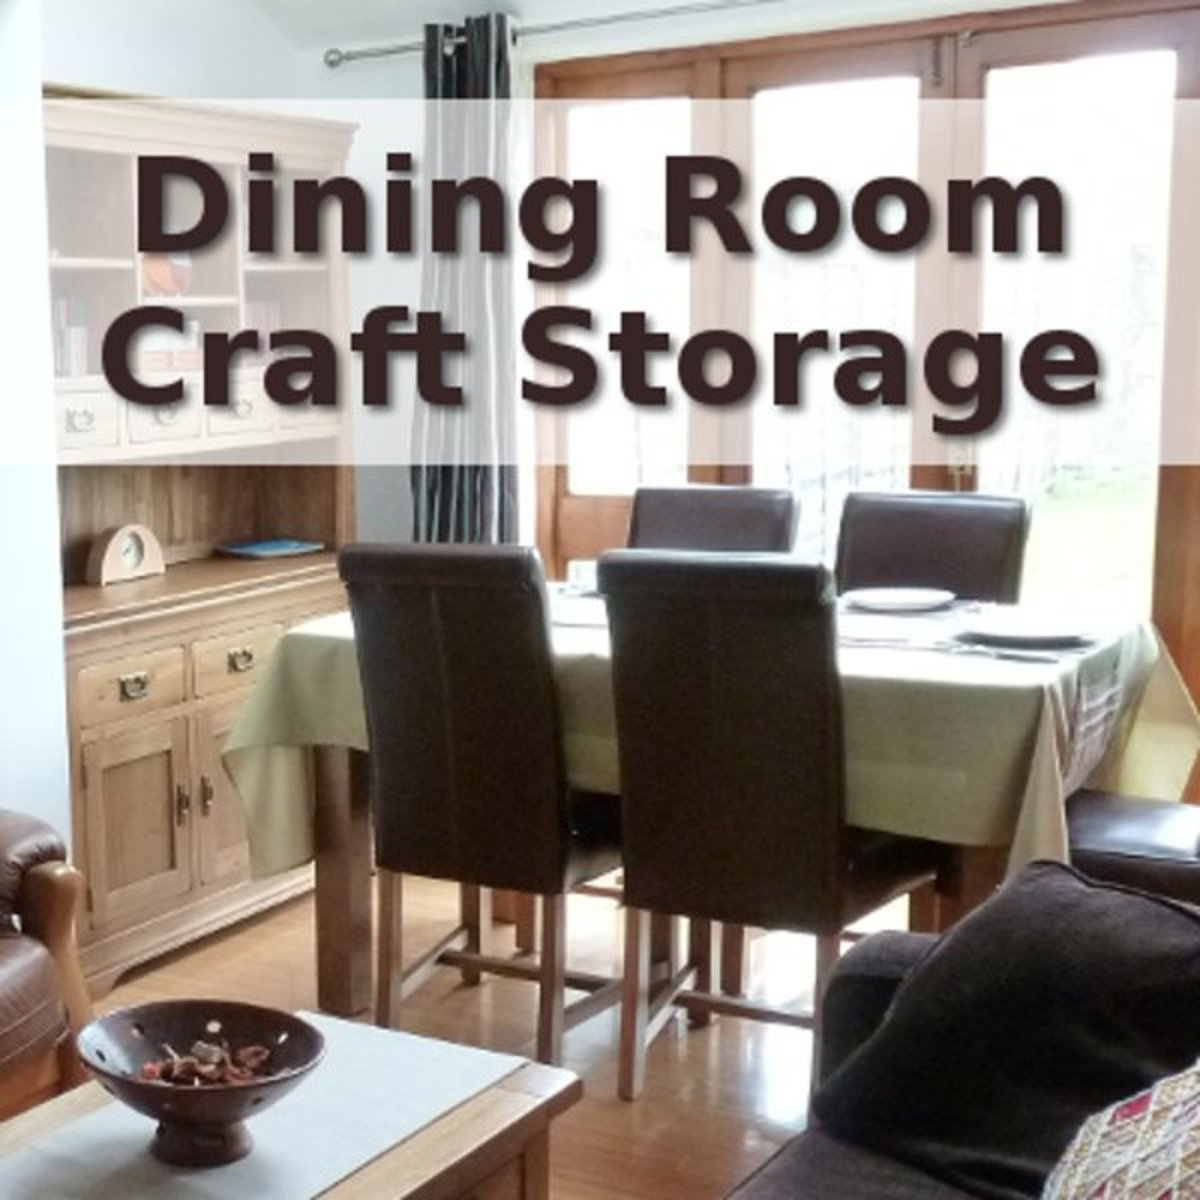 32 Dining Room Storage Ideas: My Dining Room Craft Storage Solutions